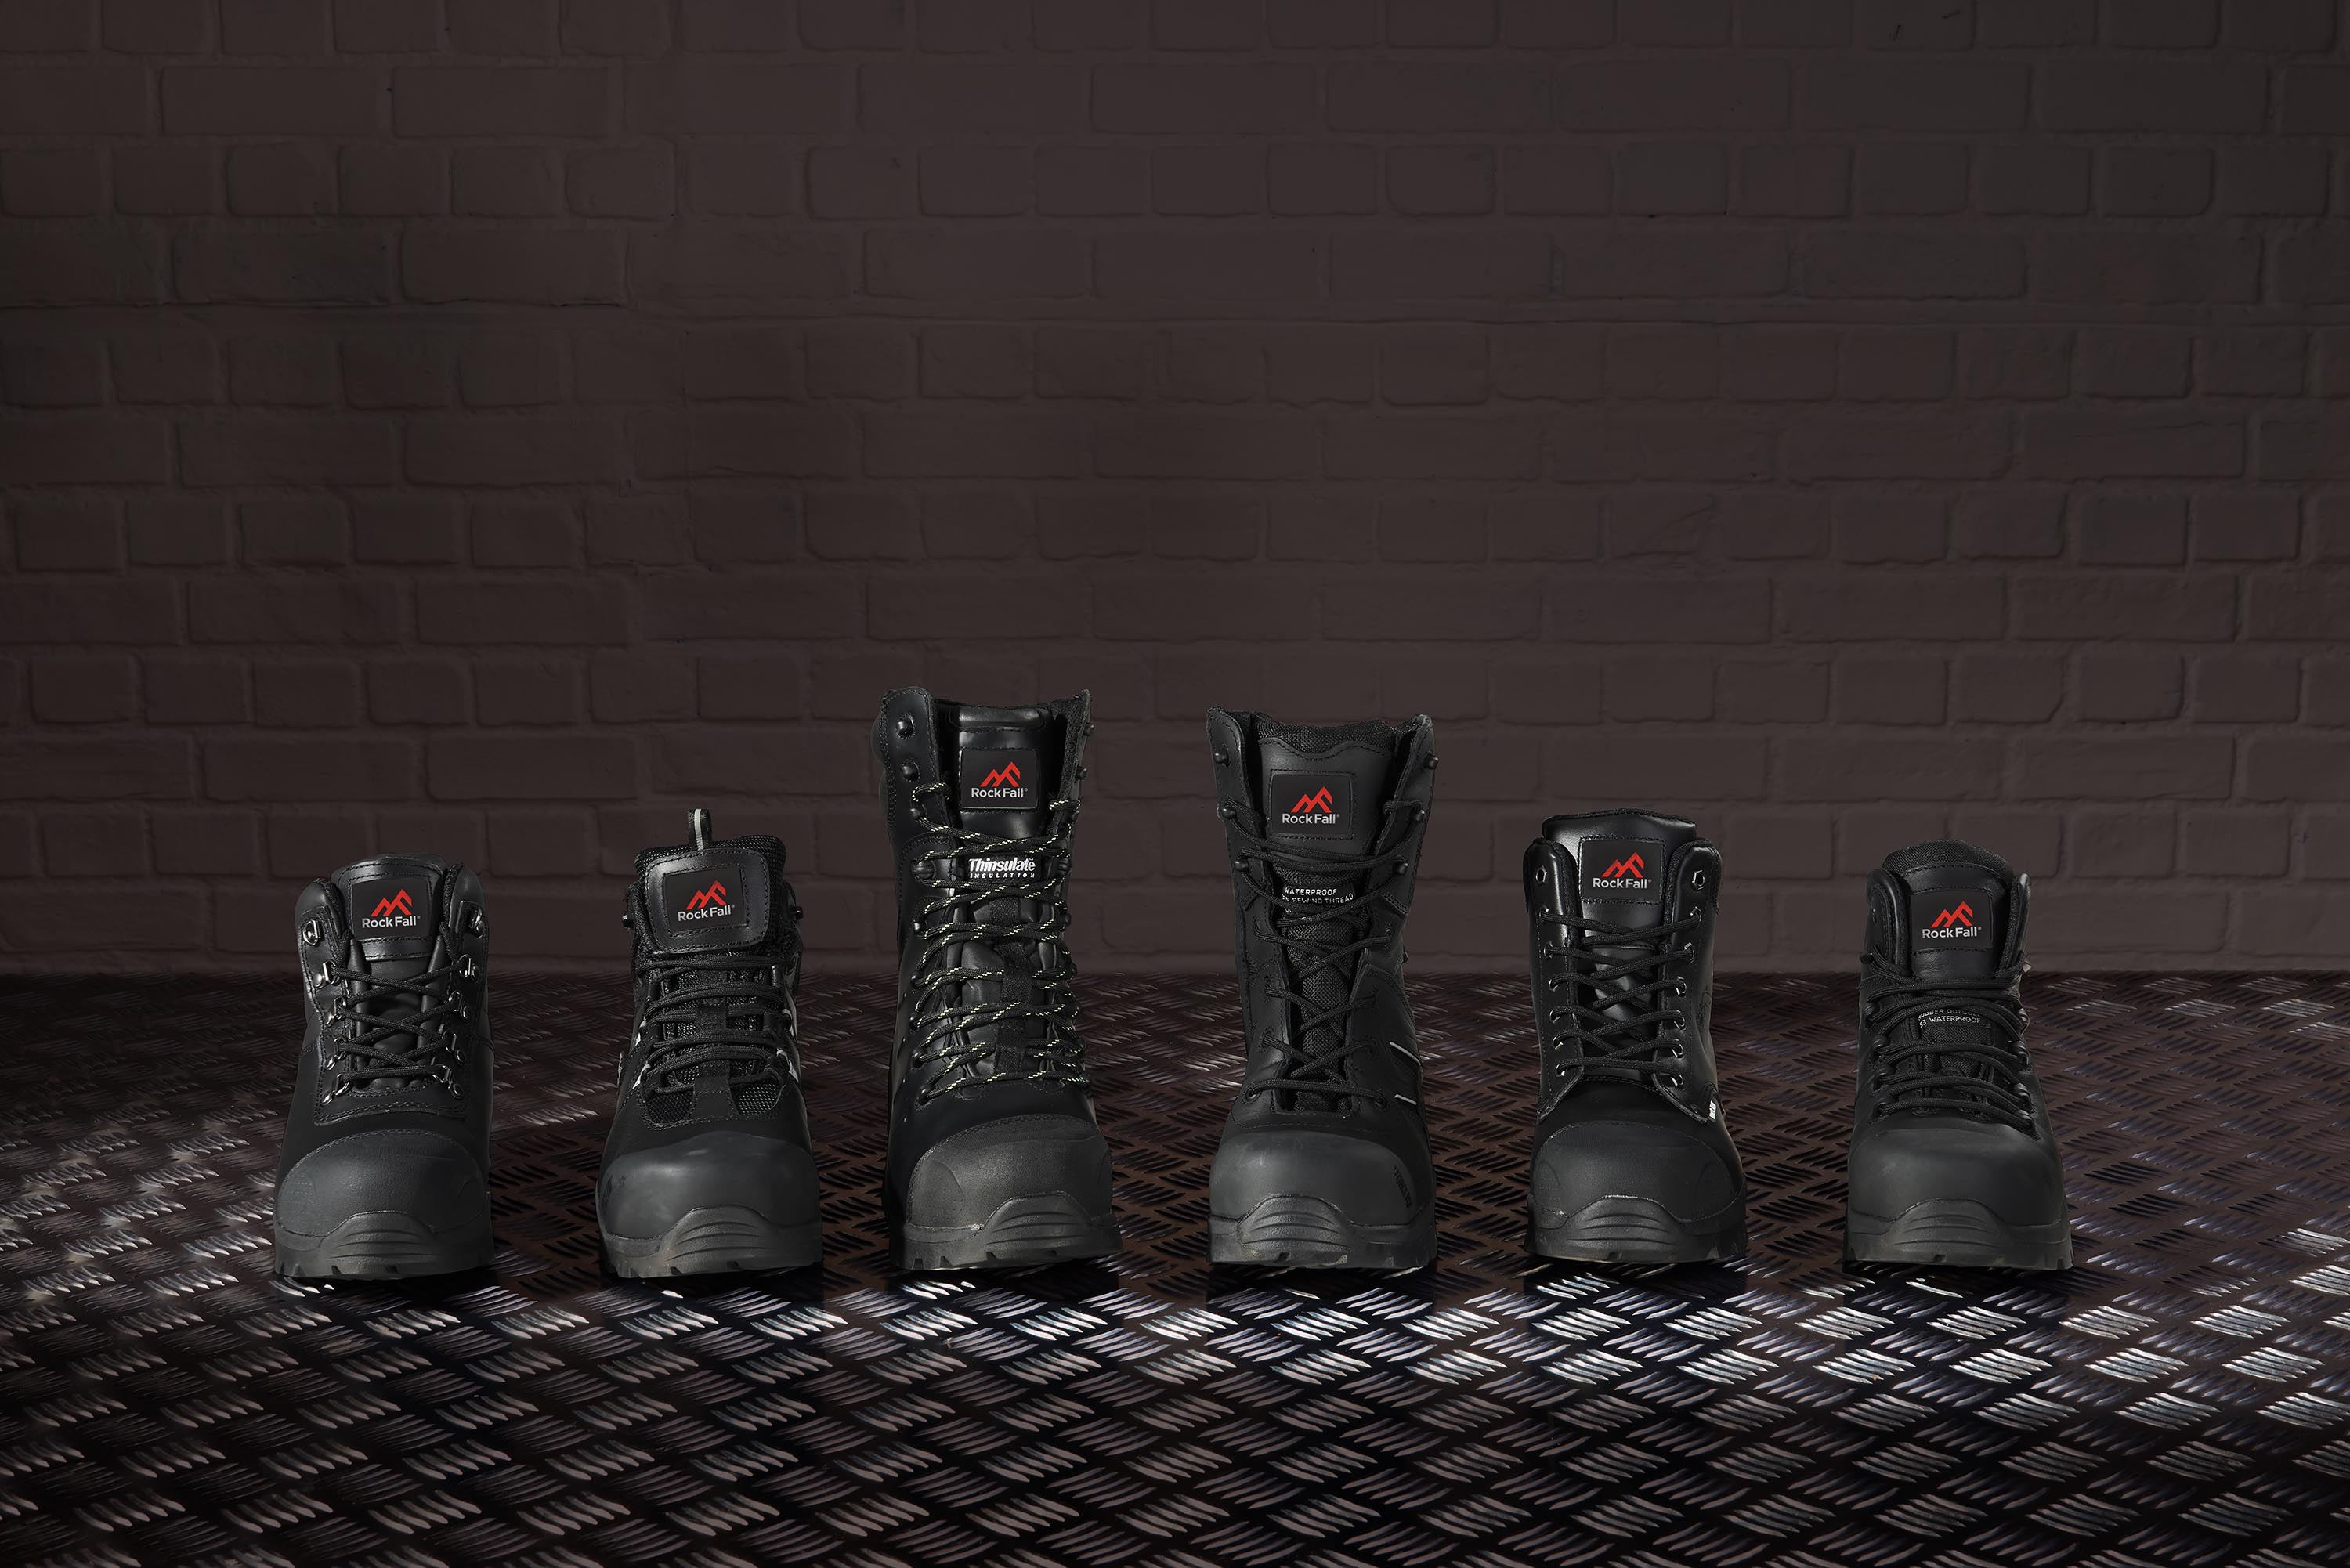 2019 sees major strides forward for Rock Fall Safety Boots